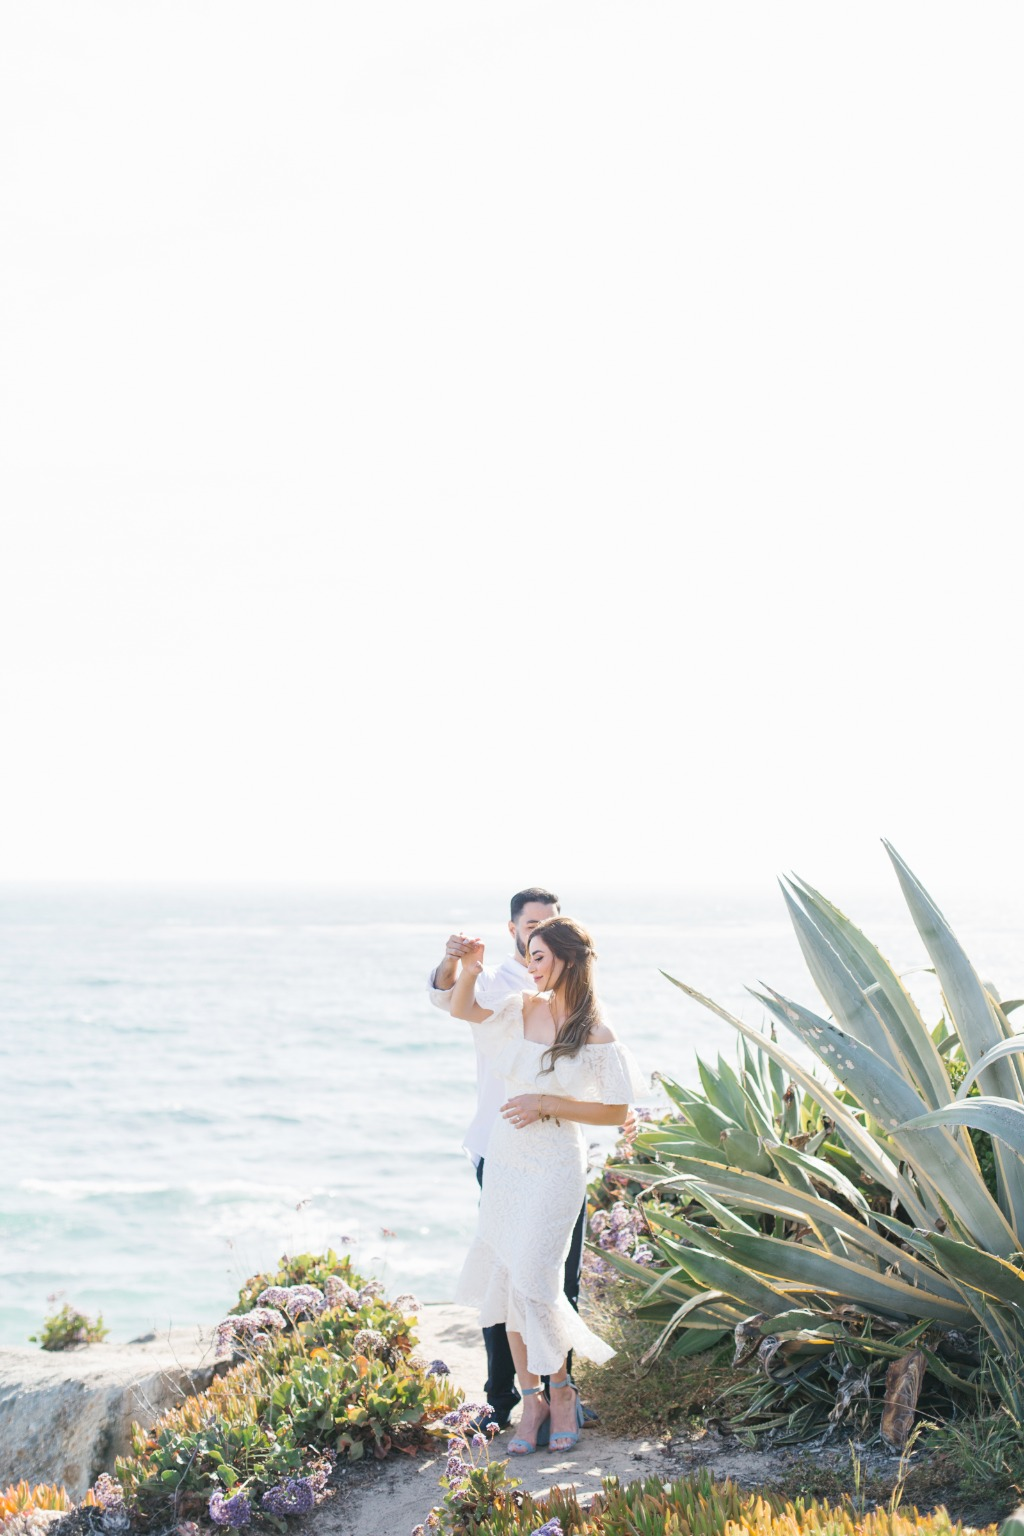 I've got engagement sessions on the brain this week! Just loved the breezy seaside vibes from this Laguna Beach session. BONUS: head